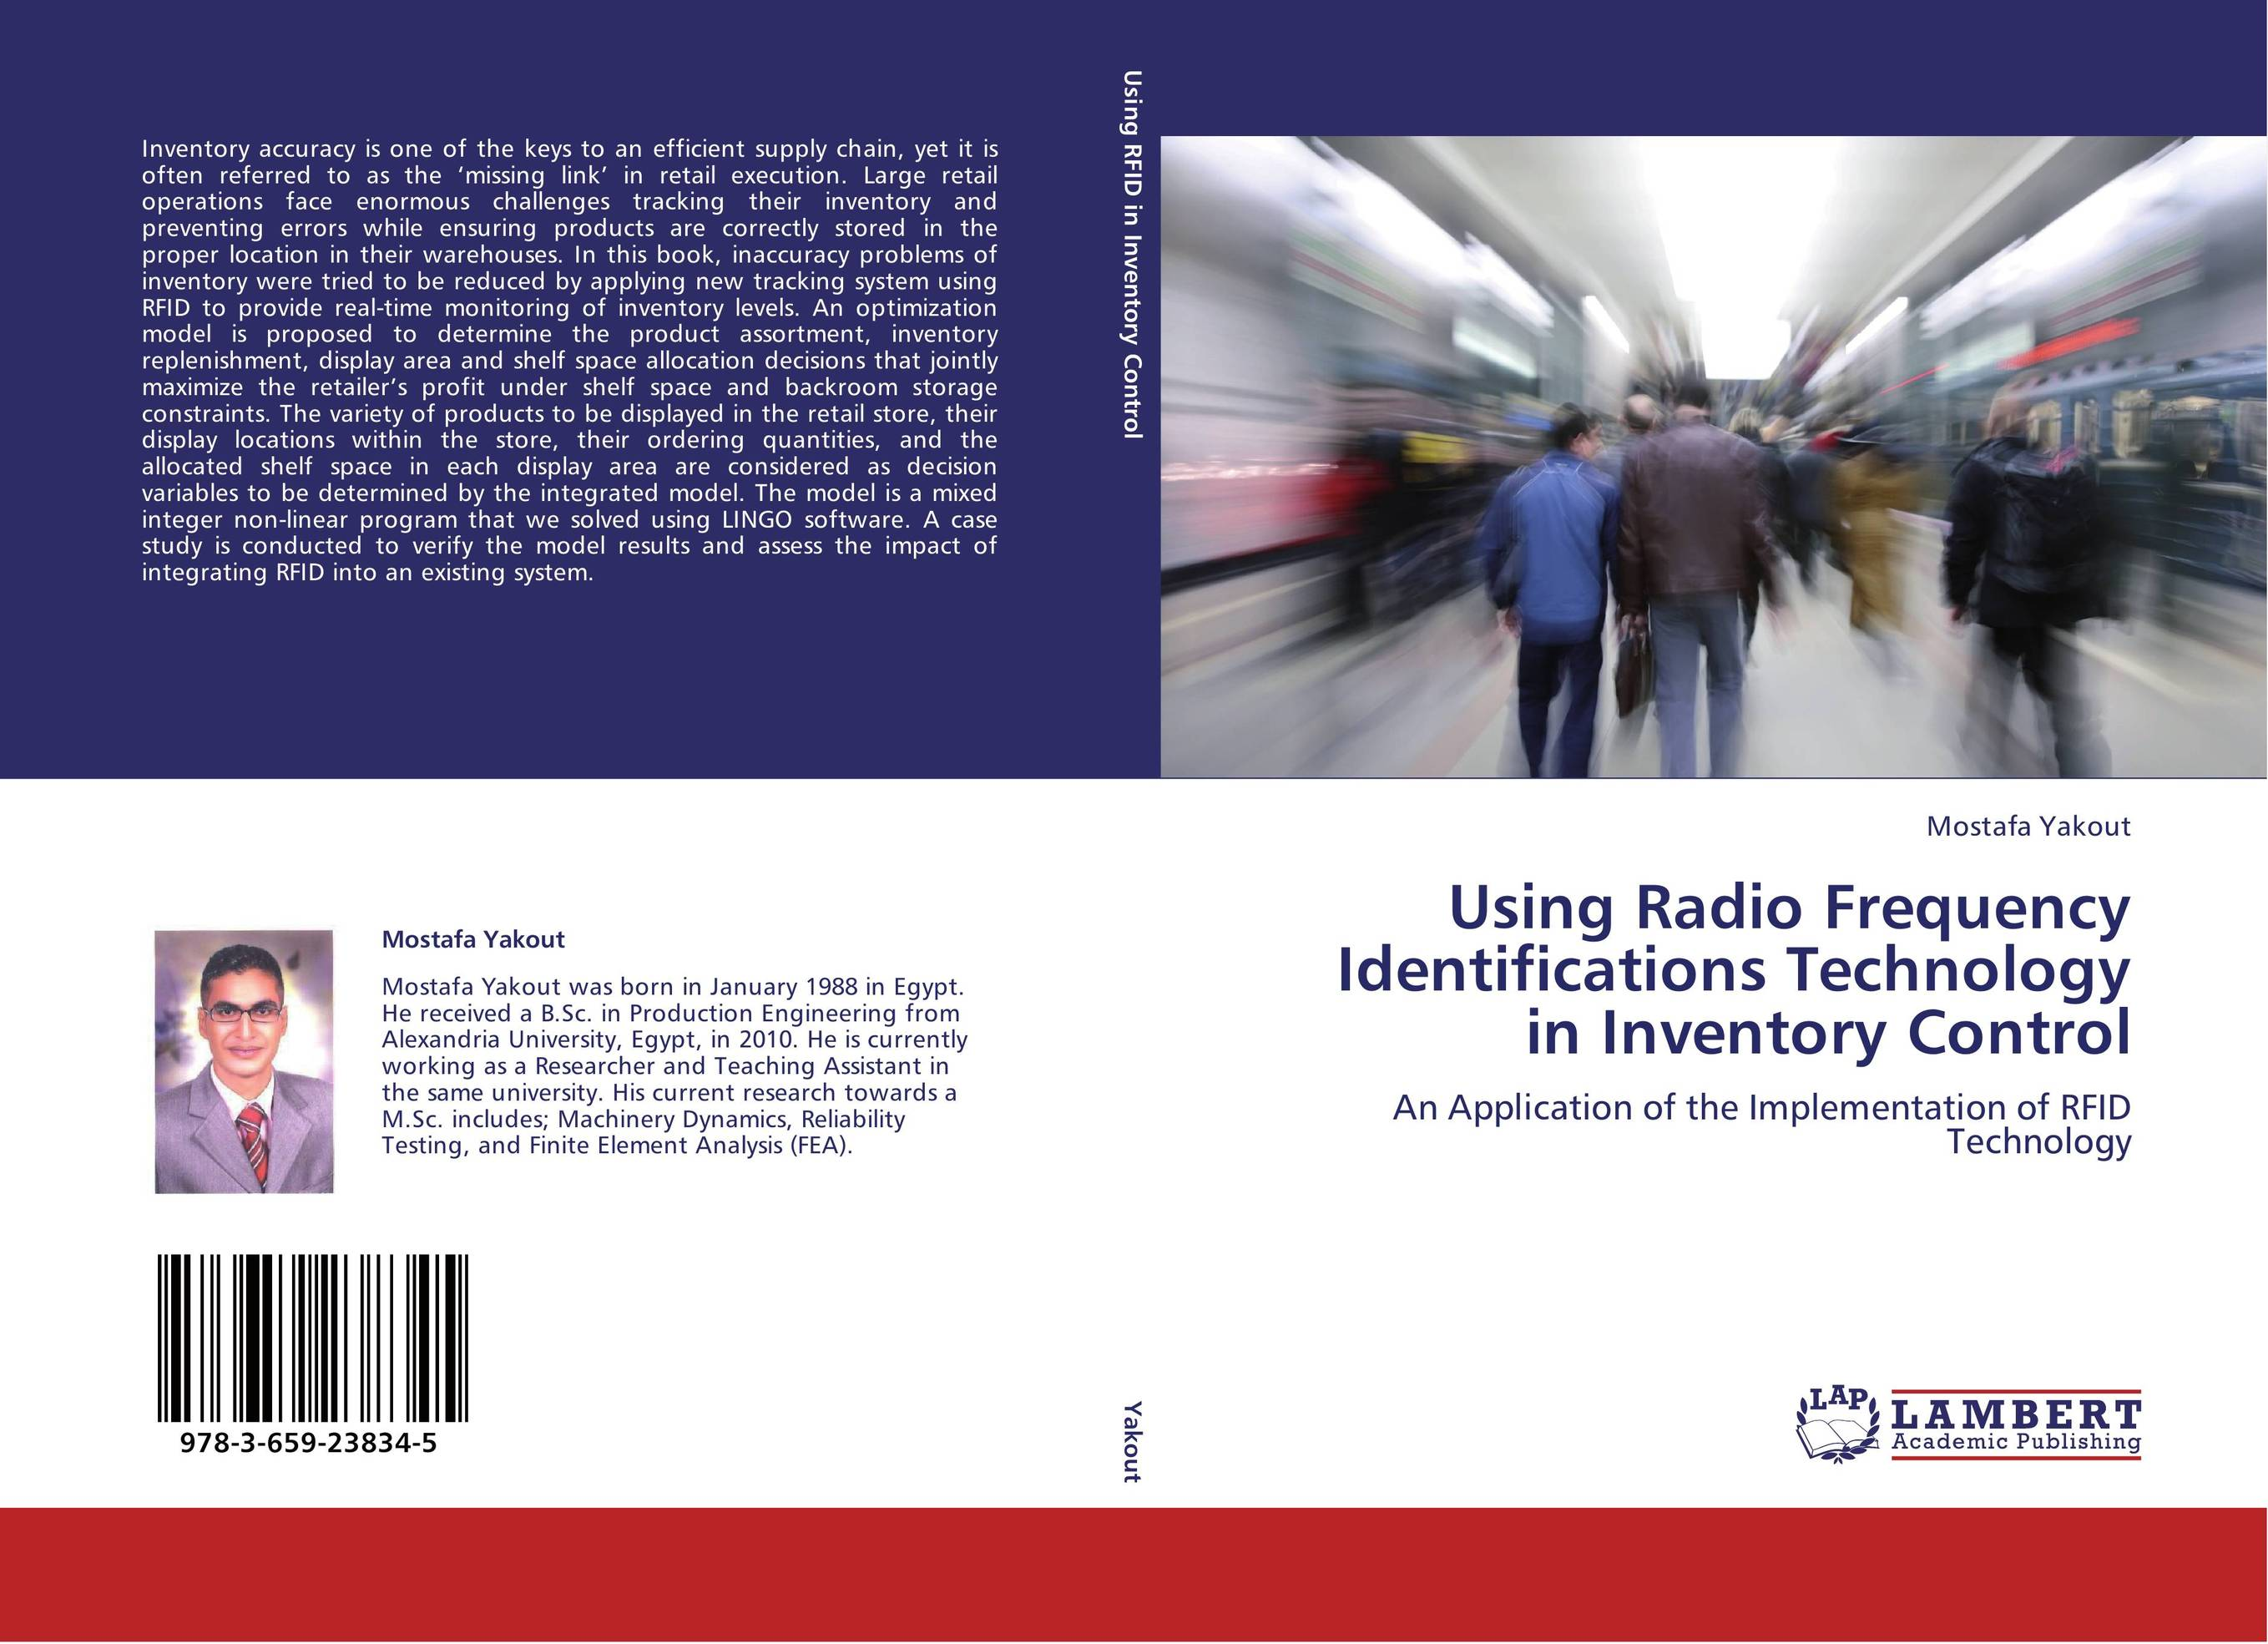 rfid case study book This book examines whether rfid can work as a tool in order to introduce and sustain lean production in companies the company studied for this application is oceaneering rotator, a world leading supplier of topside and subsea control and injection valves to the global oil and gas industry.